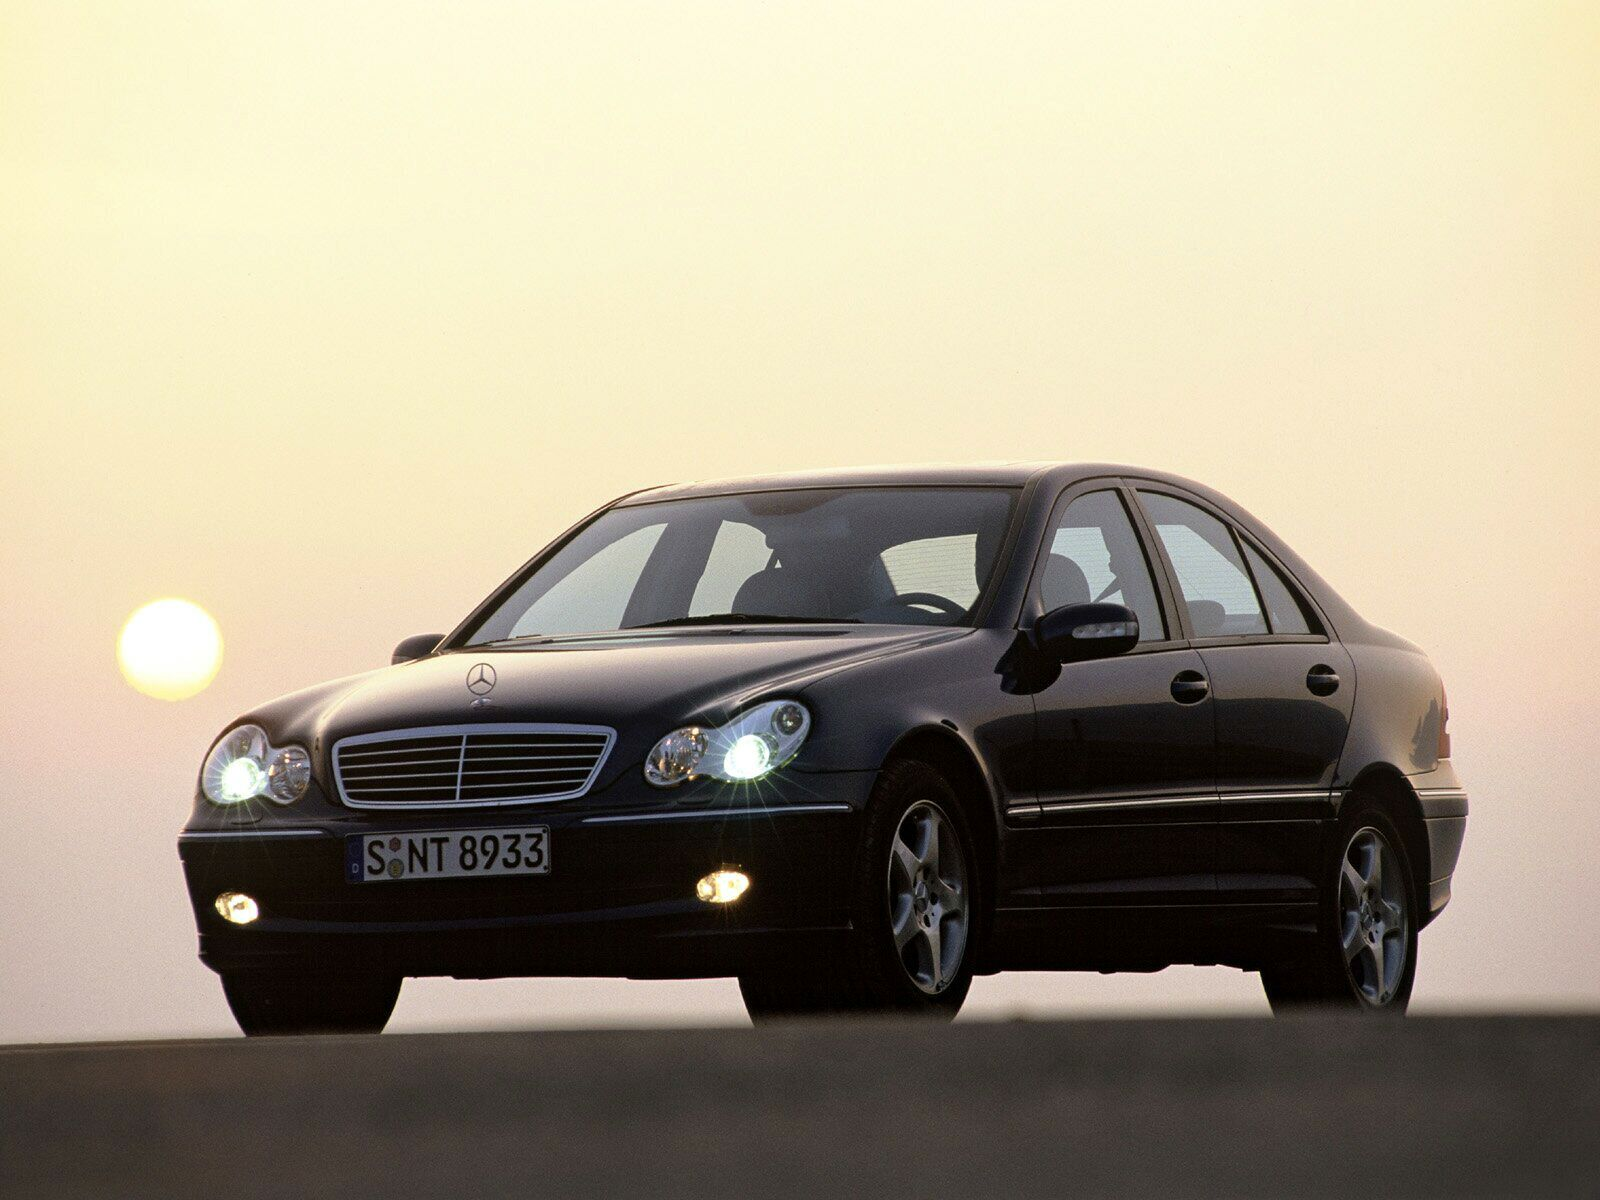 Mercedes Benz C Class 2007 Exterior Side View